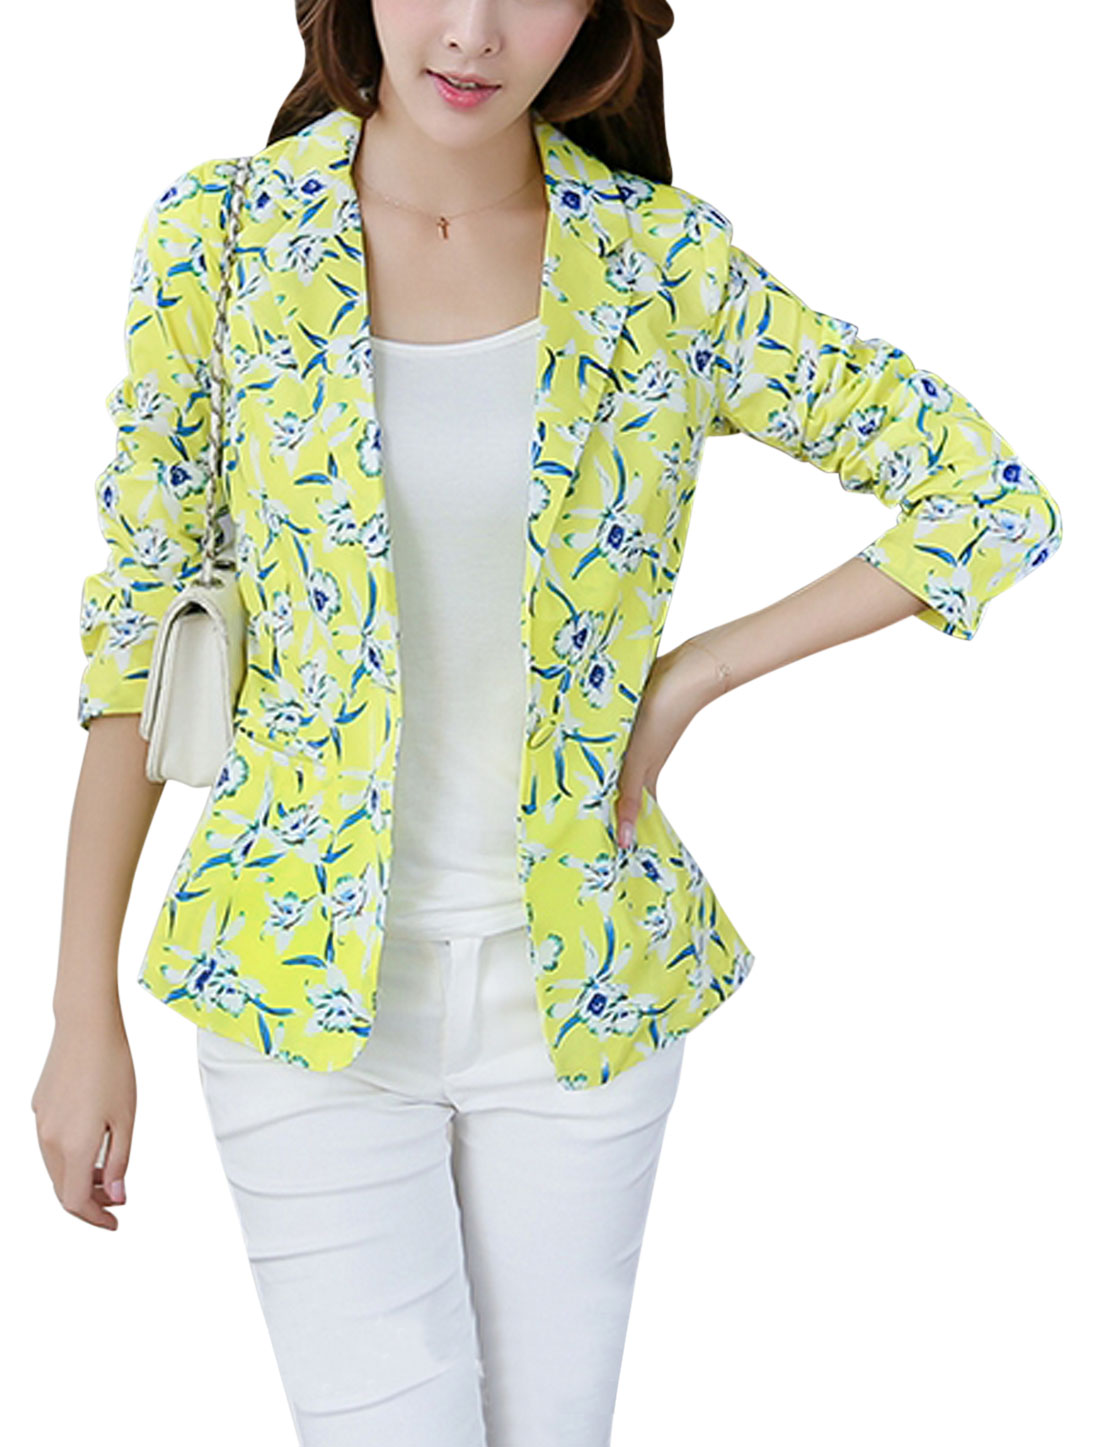 Lady Autumn Notched Lapel Floral Print Lined Back Vent Light Blazer Light Yellow M